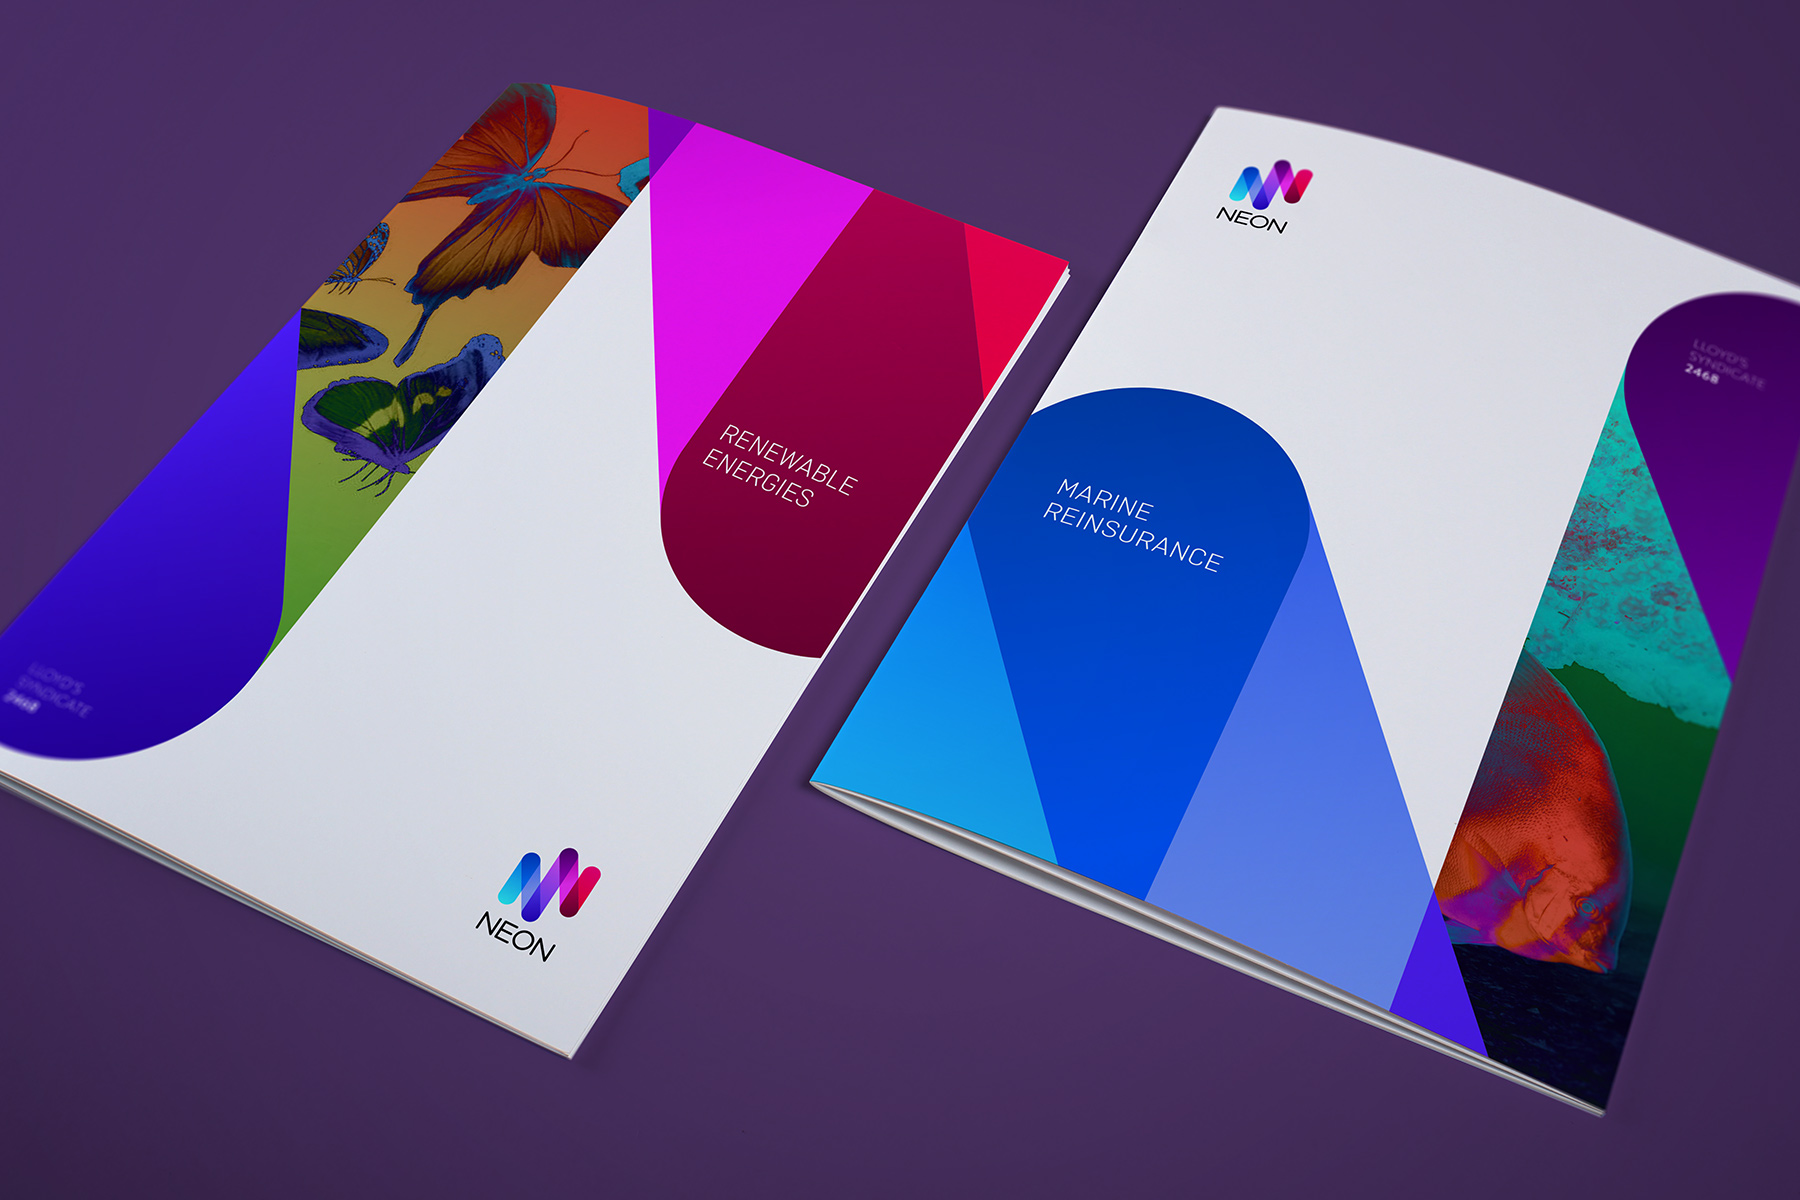 The subsequent visual identity utilises the core nature of the brand mark yet extends it into a flexible and dynamic system.